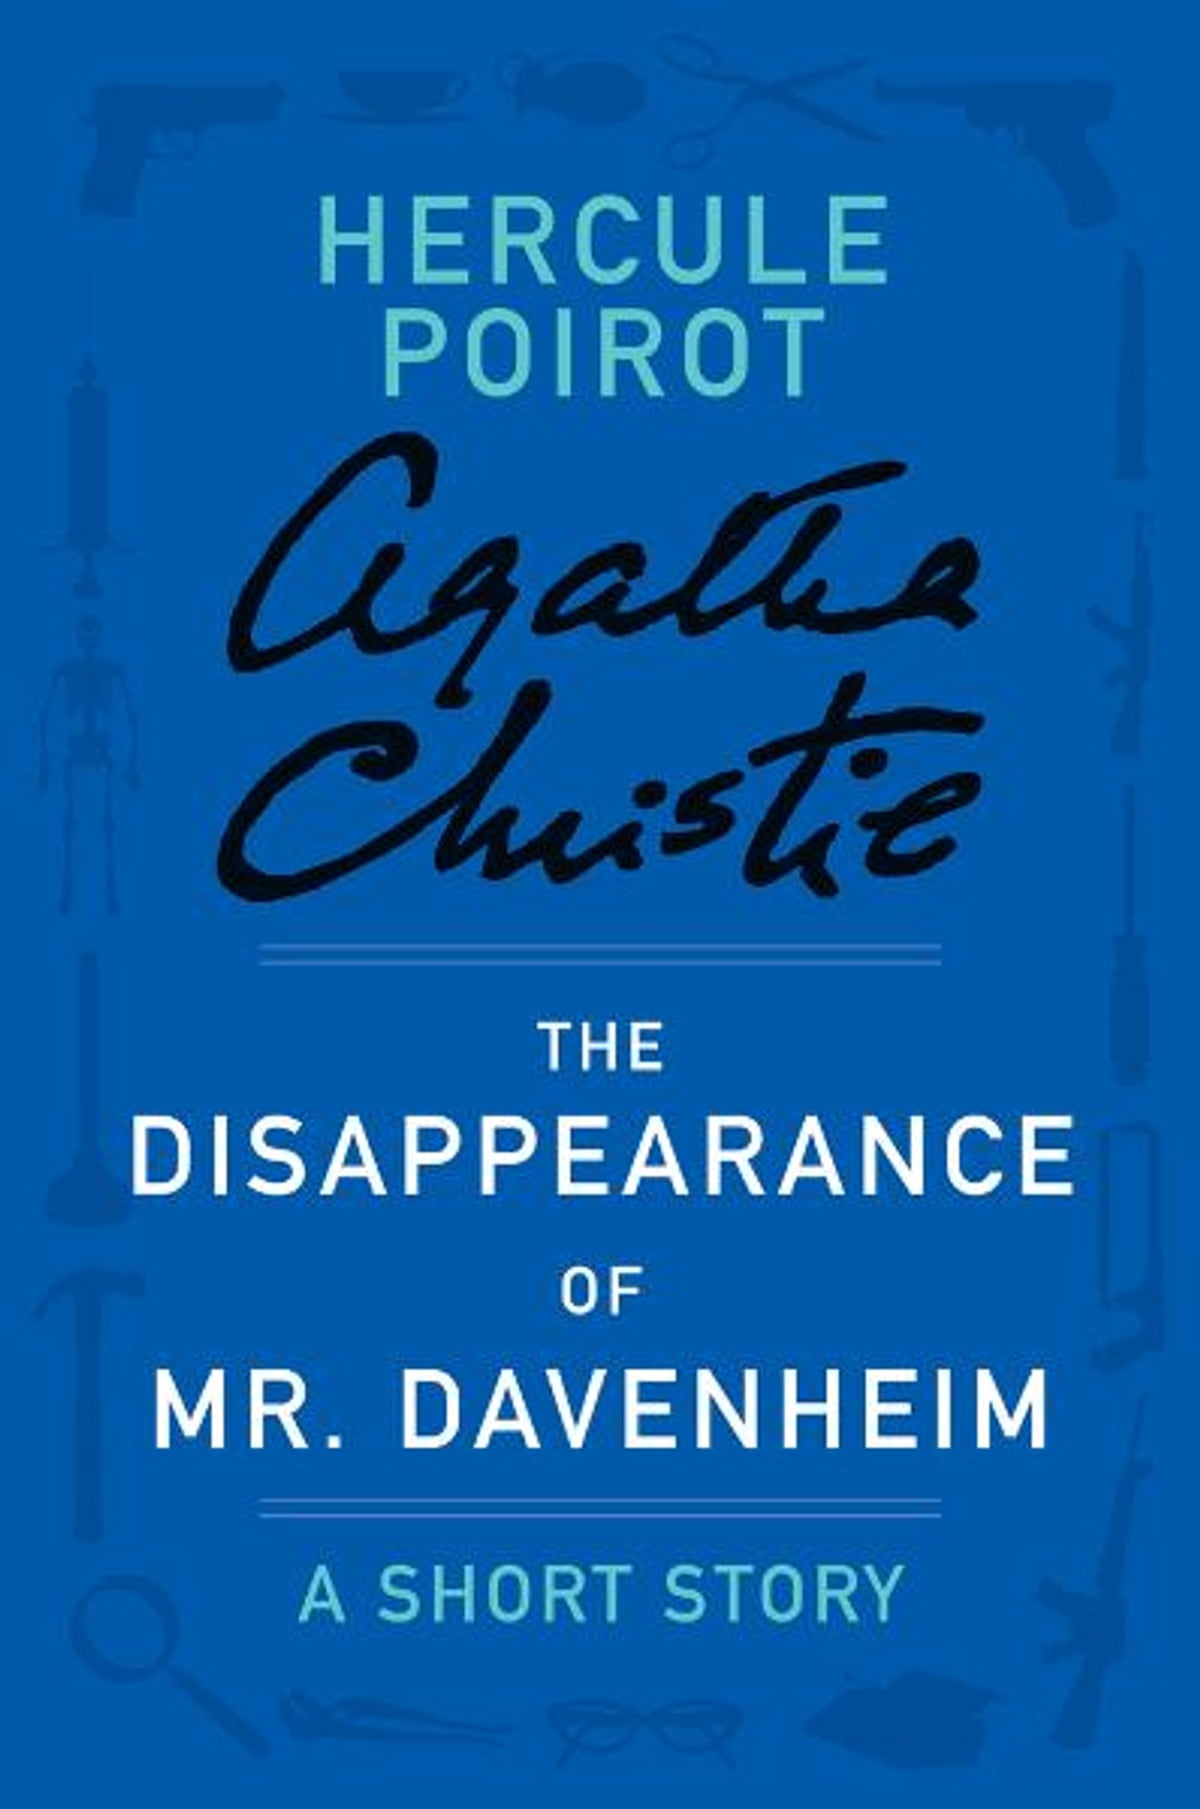 The disappearance of mr davenheim ebook by agatha christie the disappearance of mr davenheim ebook by agatha christie 9780062210906 rakuten kobo fandeluxe Ebook collections